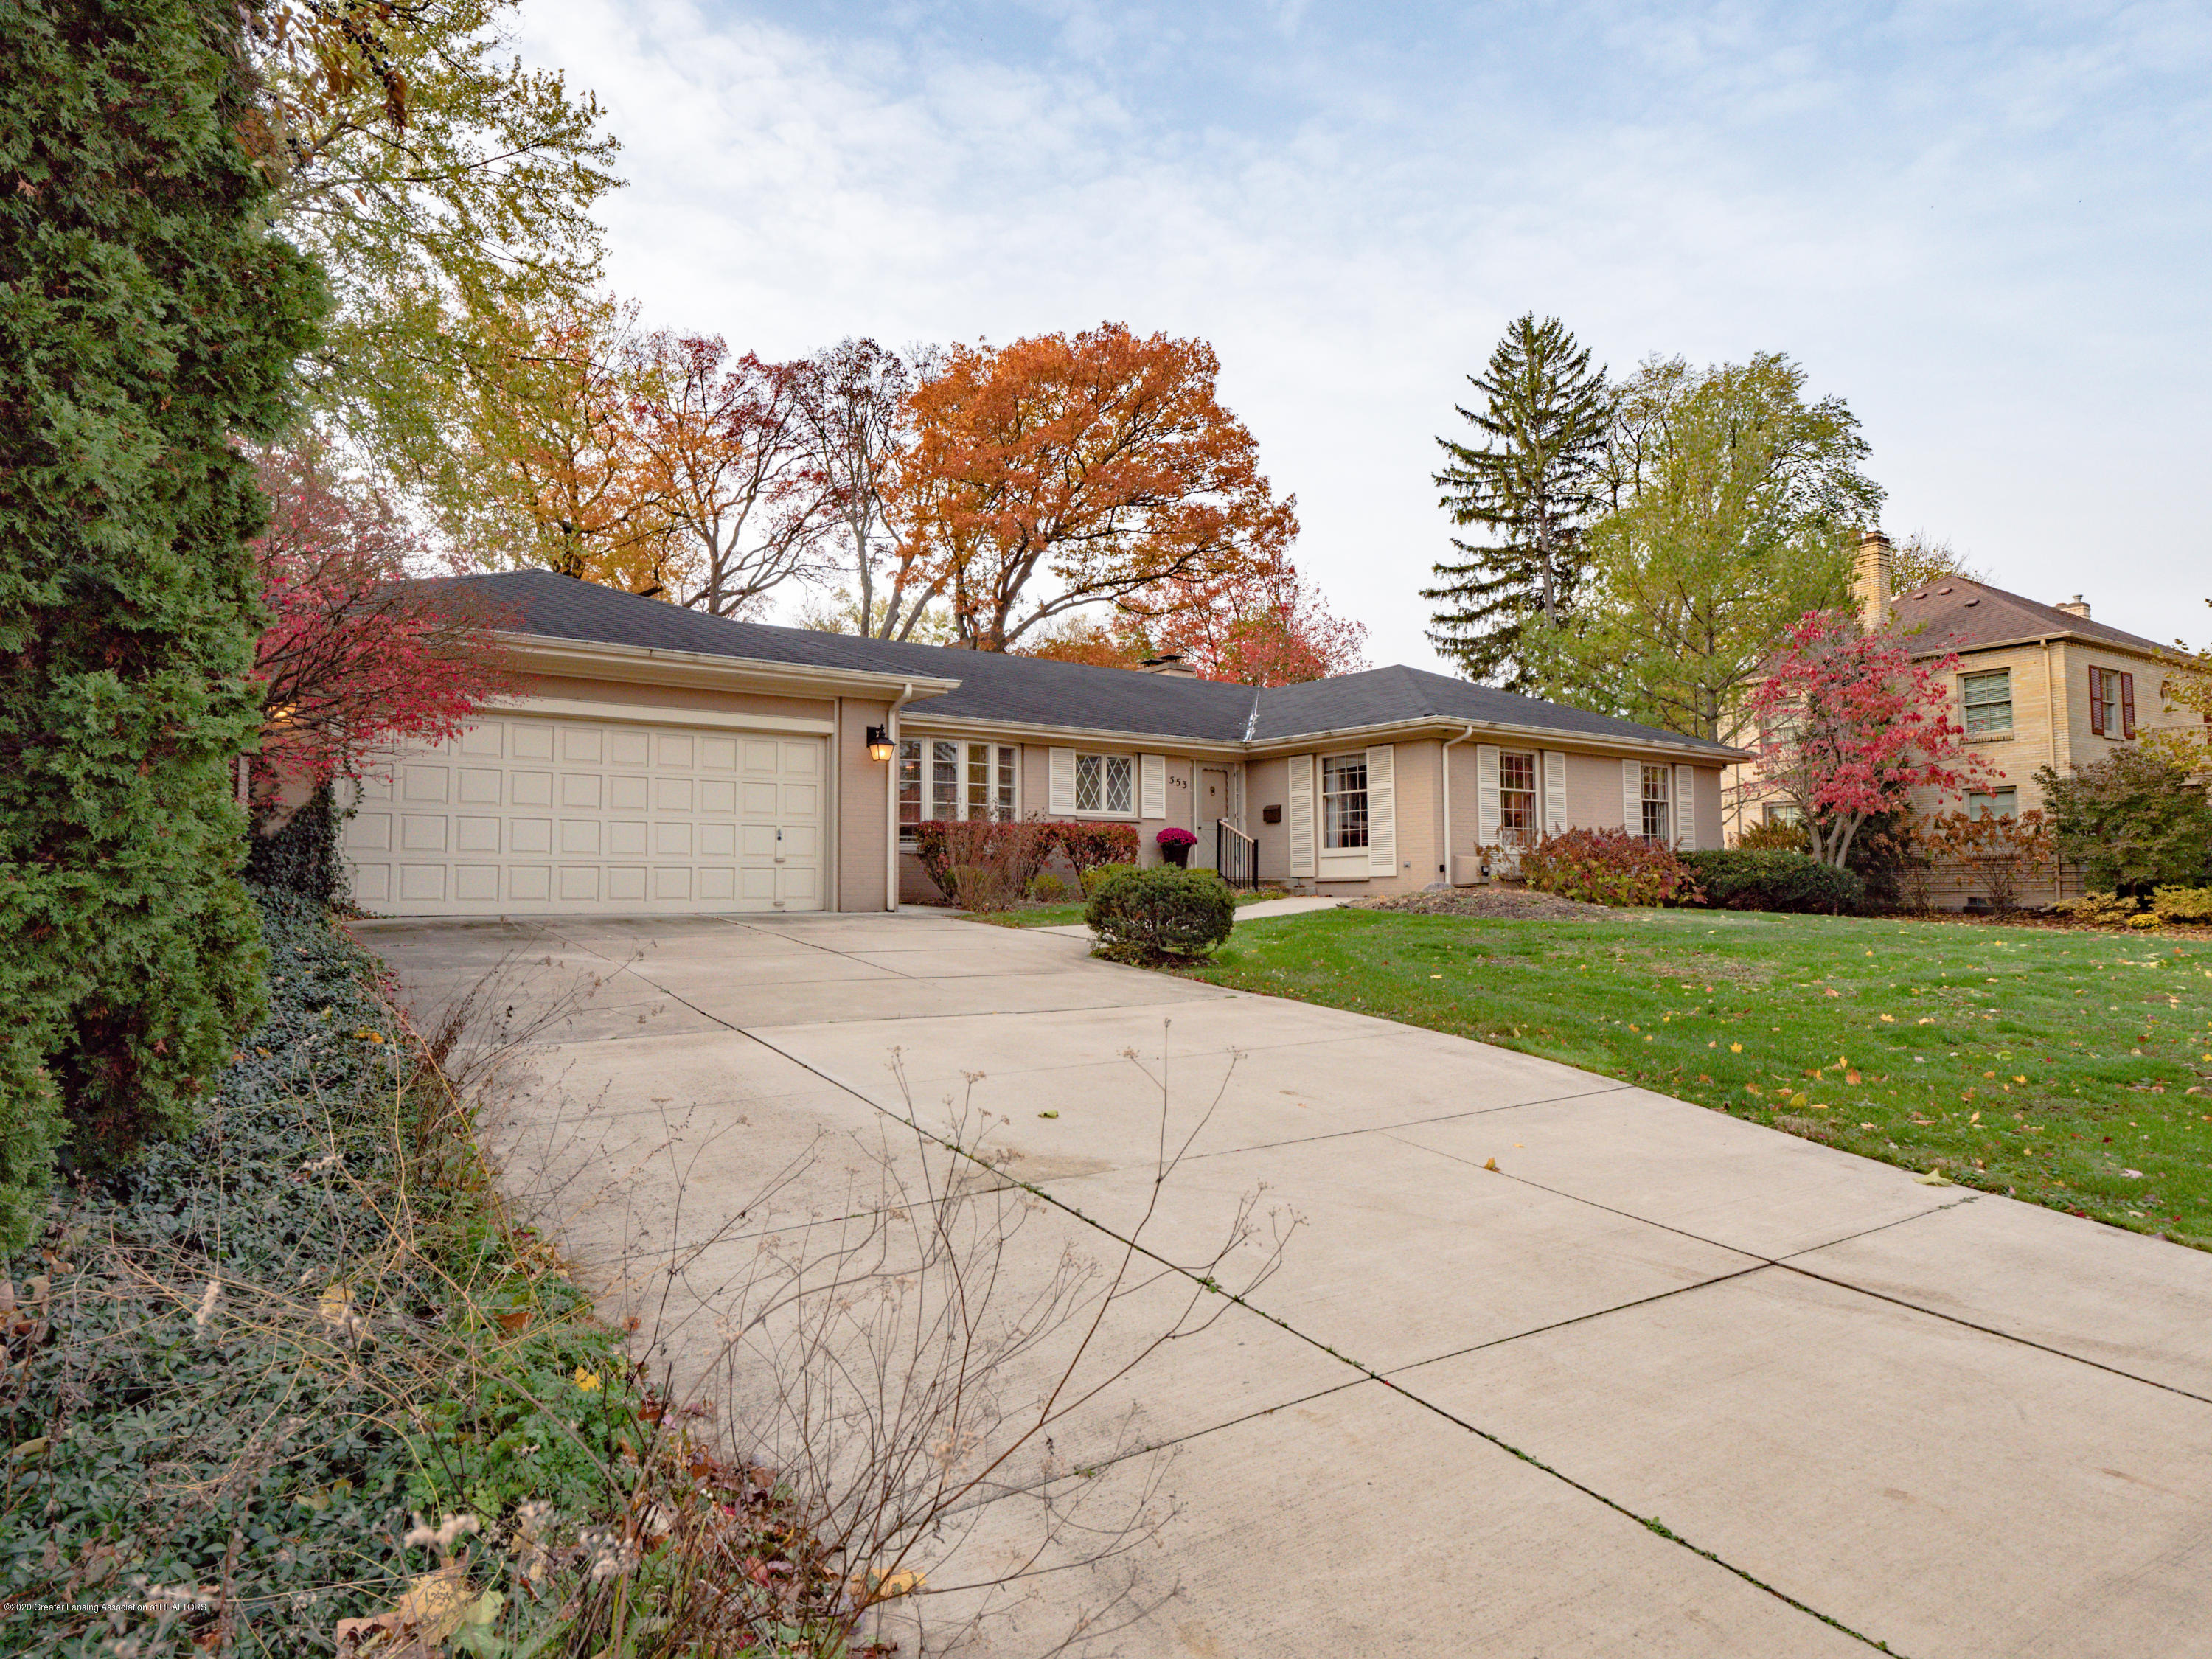 553 Southlawn Ave - 553_Southlawn_Ave-3 - 40